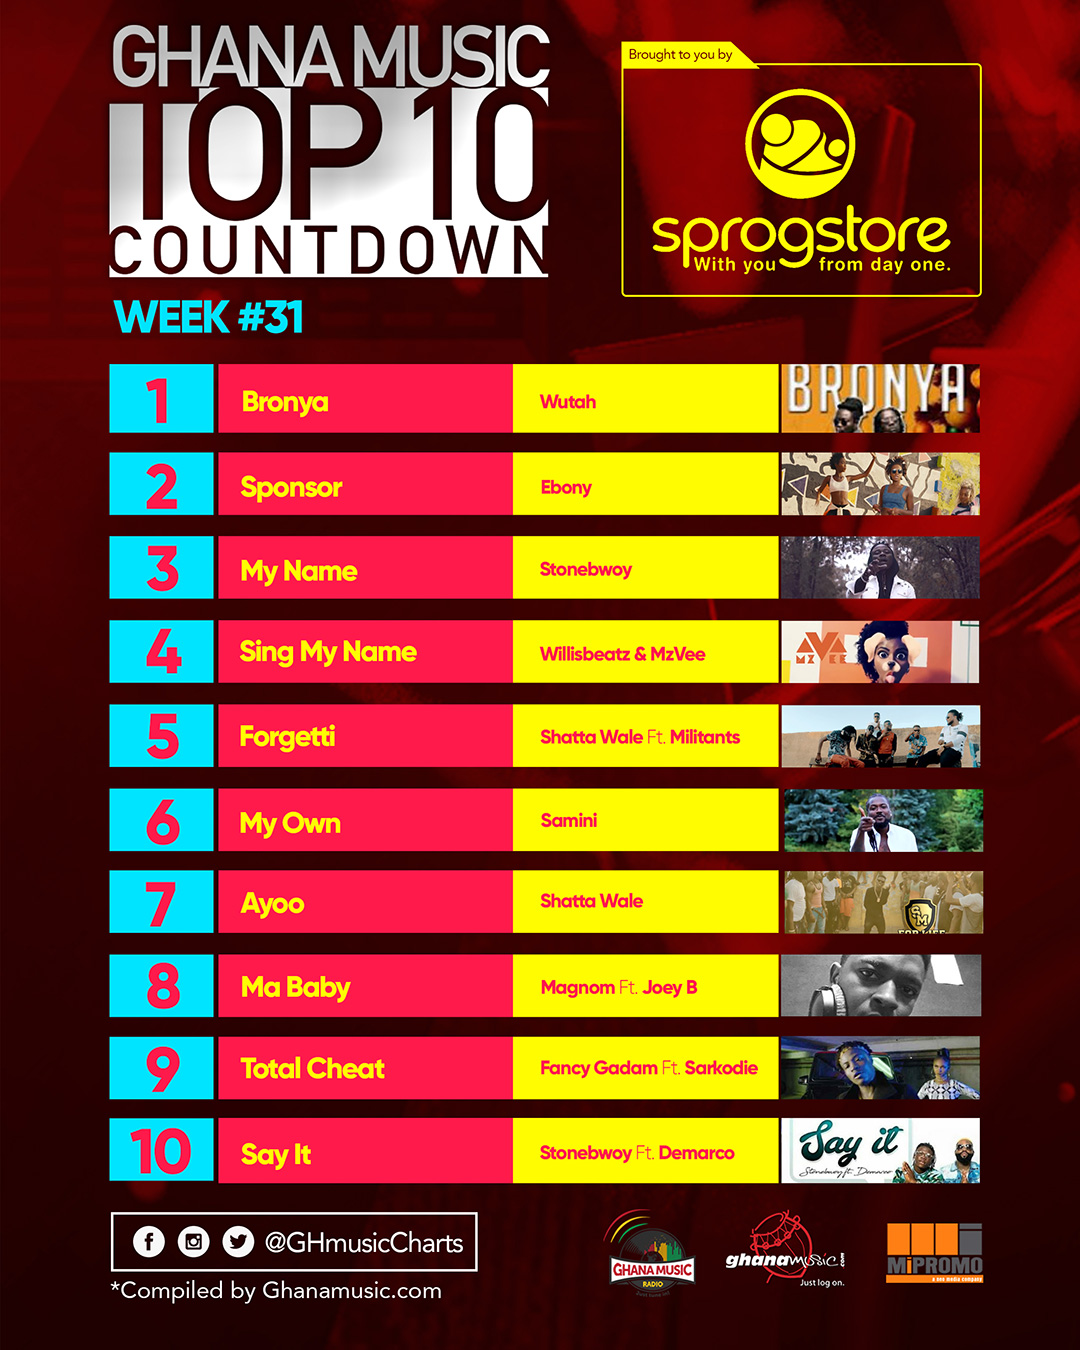 Week #31: Week ending Saturday, August 5th, 2017. Ghana Music Top 10 Countdown.